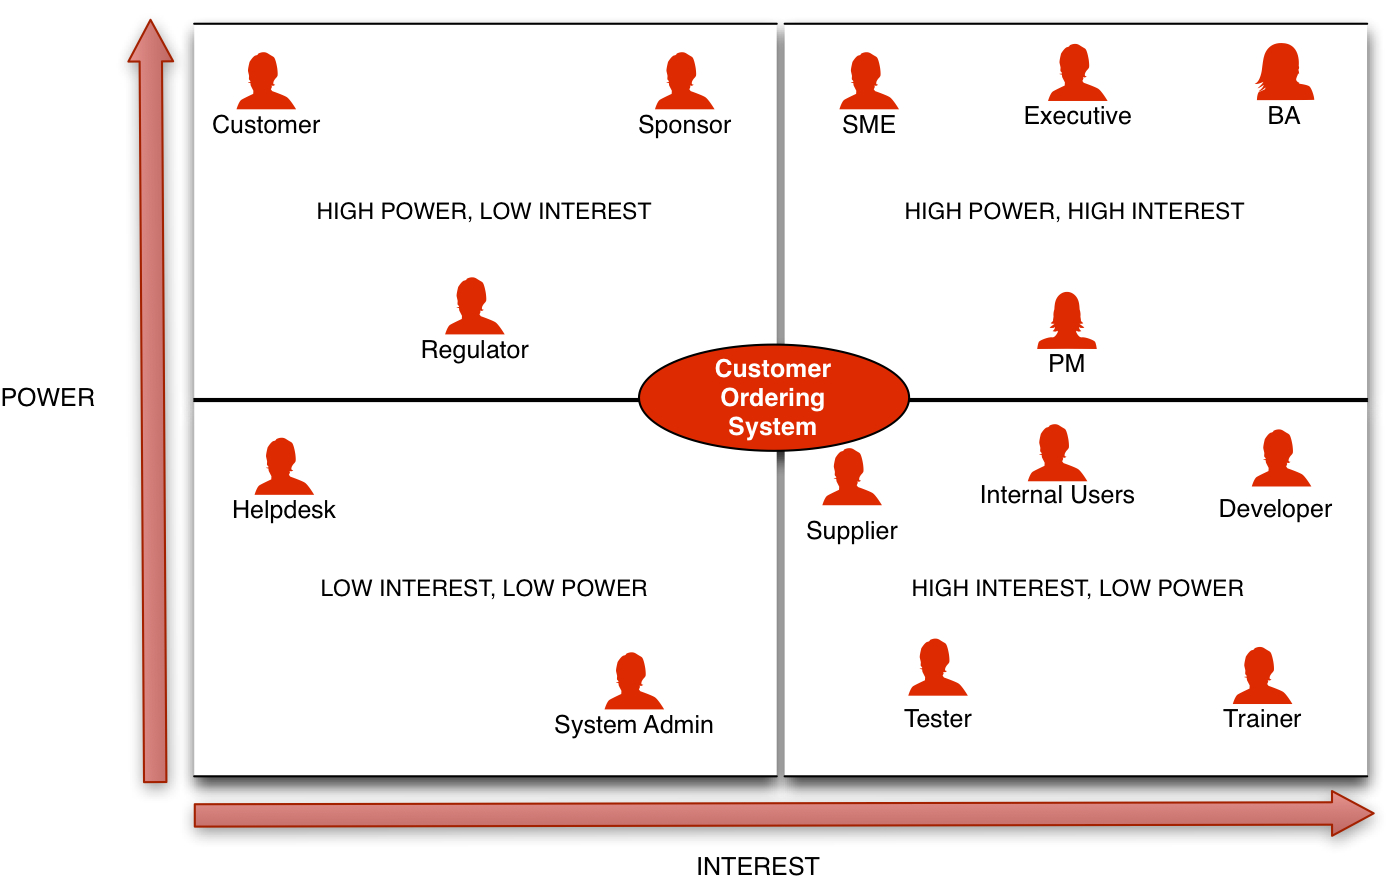 Stakeholder Matrix showing the power/interest of stakeholders